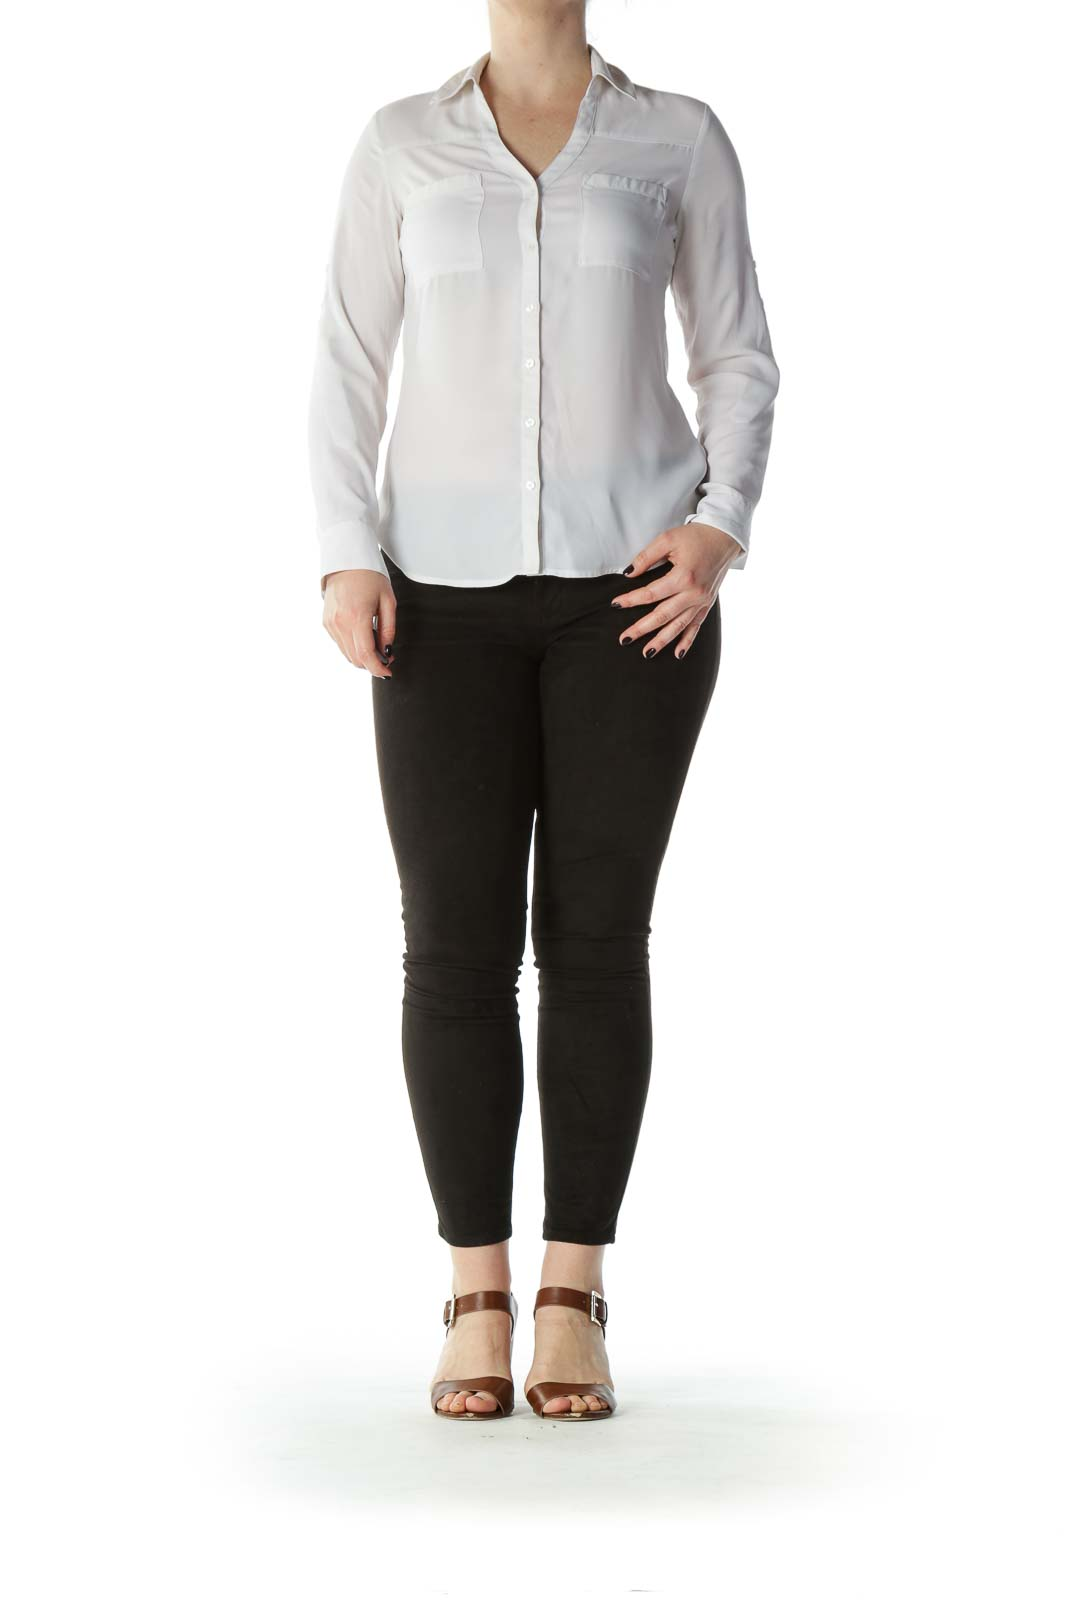 White Collared Translucent Button Down Blouse